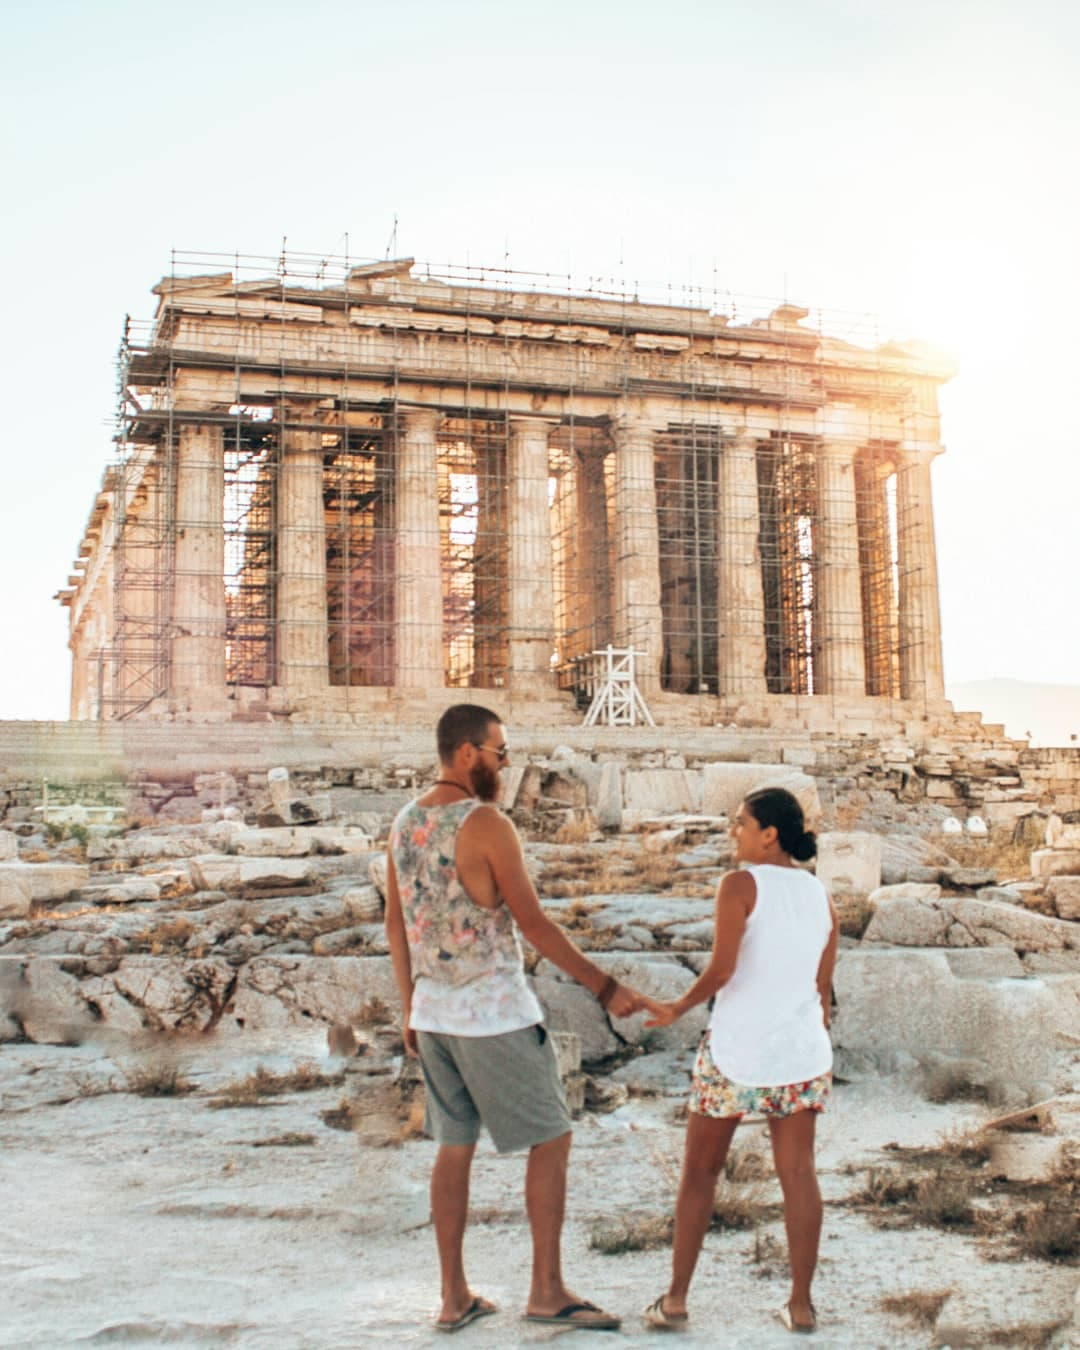 Step back in time at the Acropolis inAthens